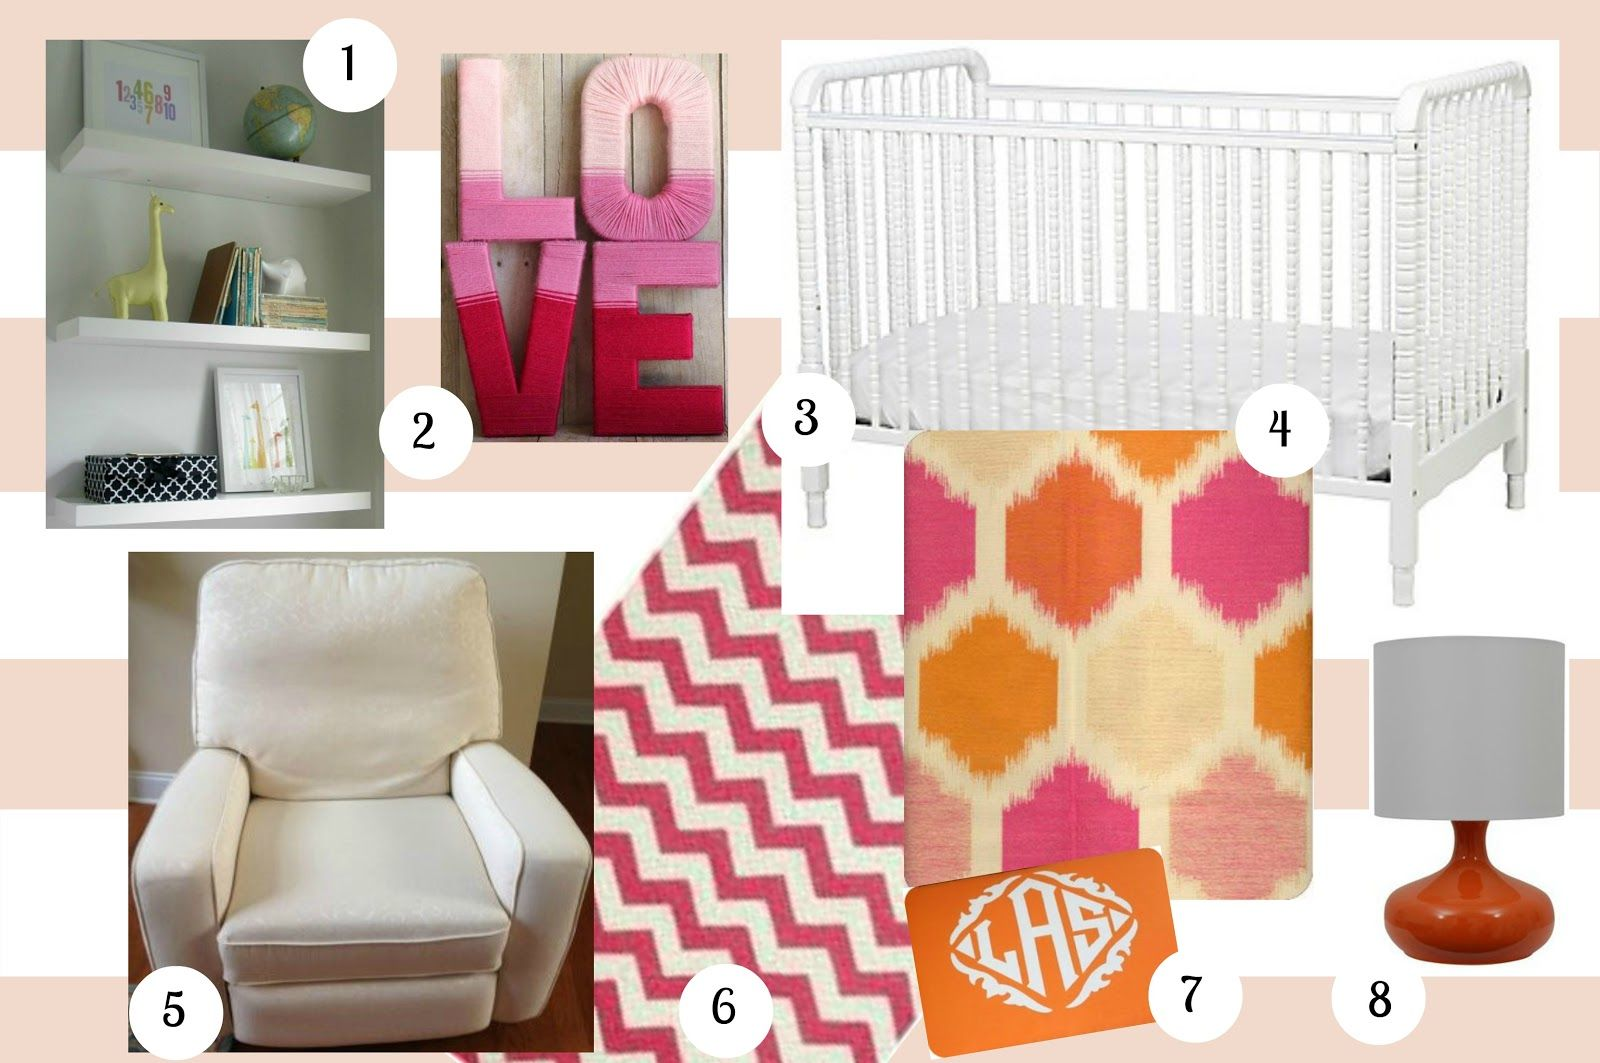 baby girl nursery ideas wedded whittaker february 2013 baby